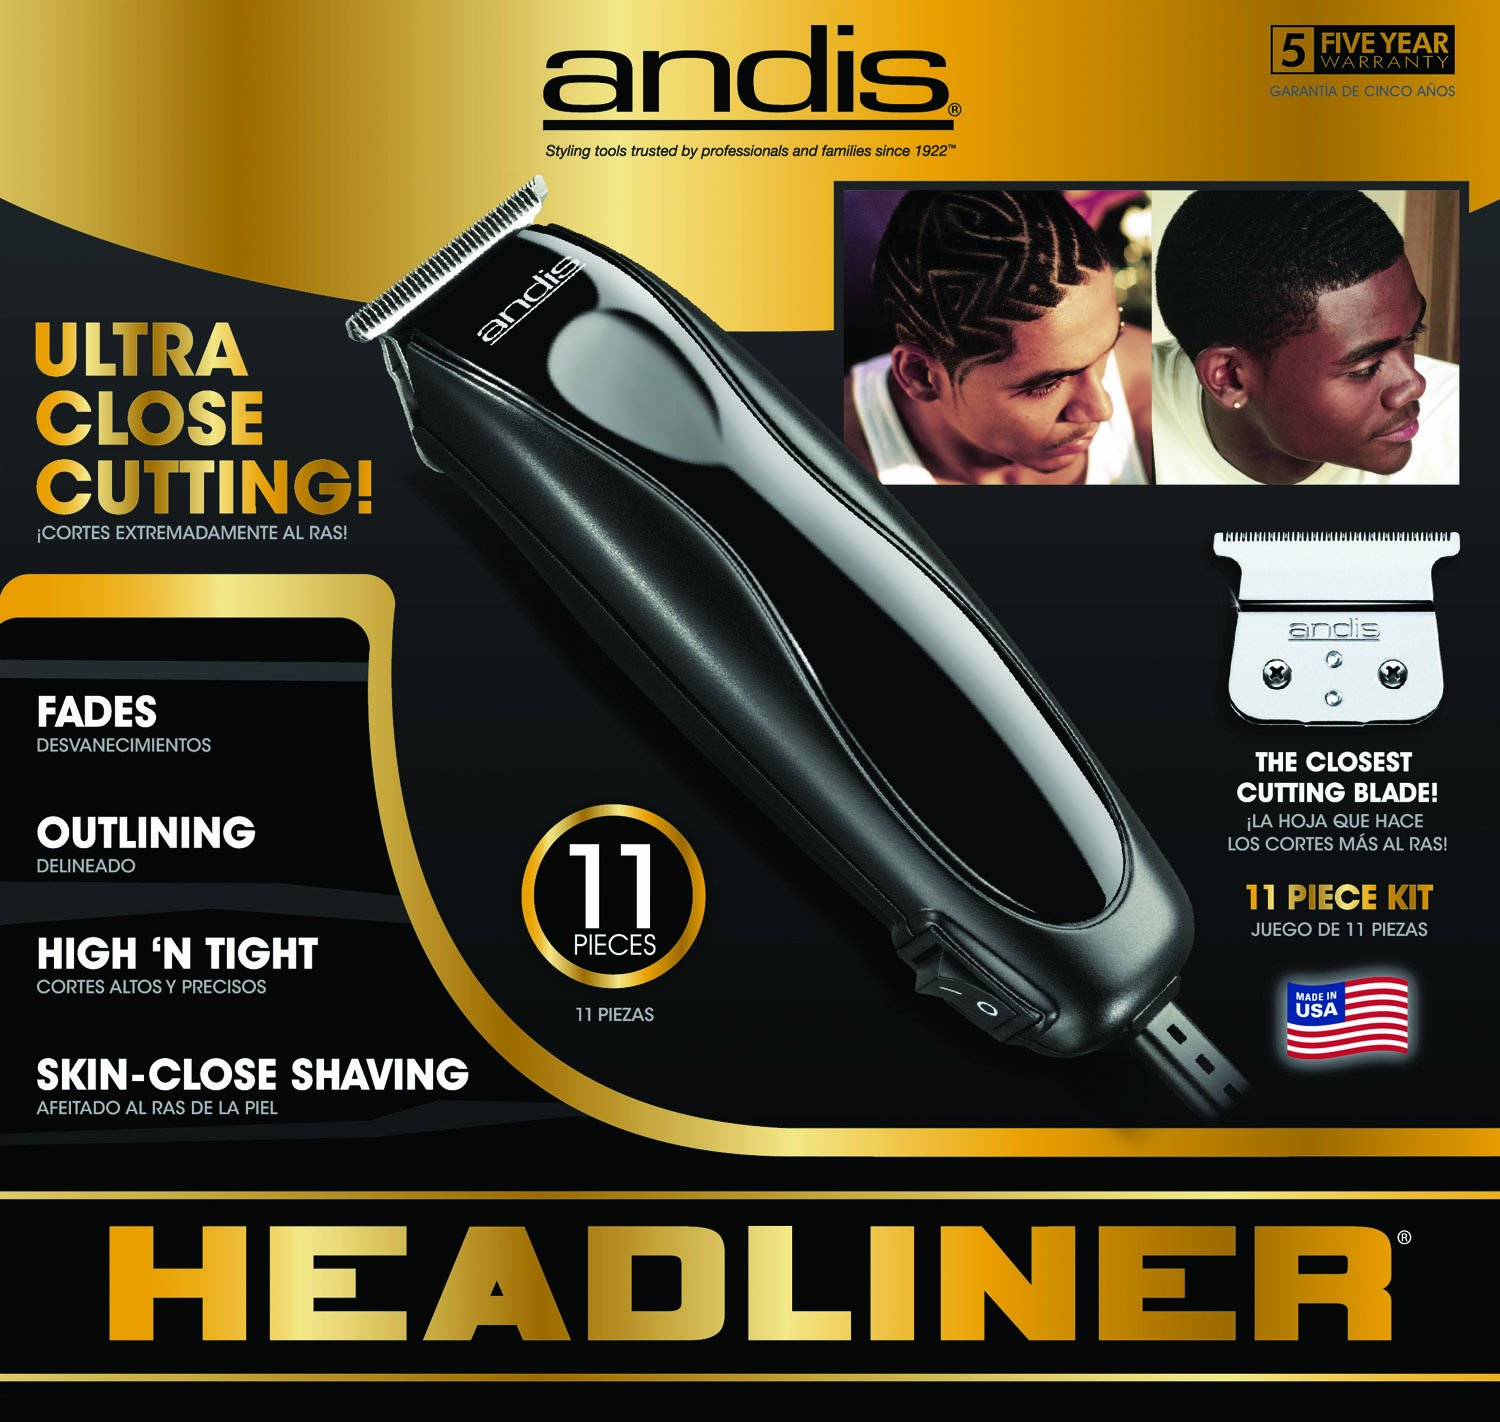 Andis Skin-Close Headliner 11-Piece Hair Clipper/Beard Trimmer Kit, Black, Model LS-2 (29775) by Andis (Image #3)